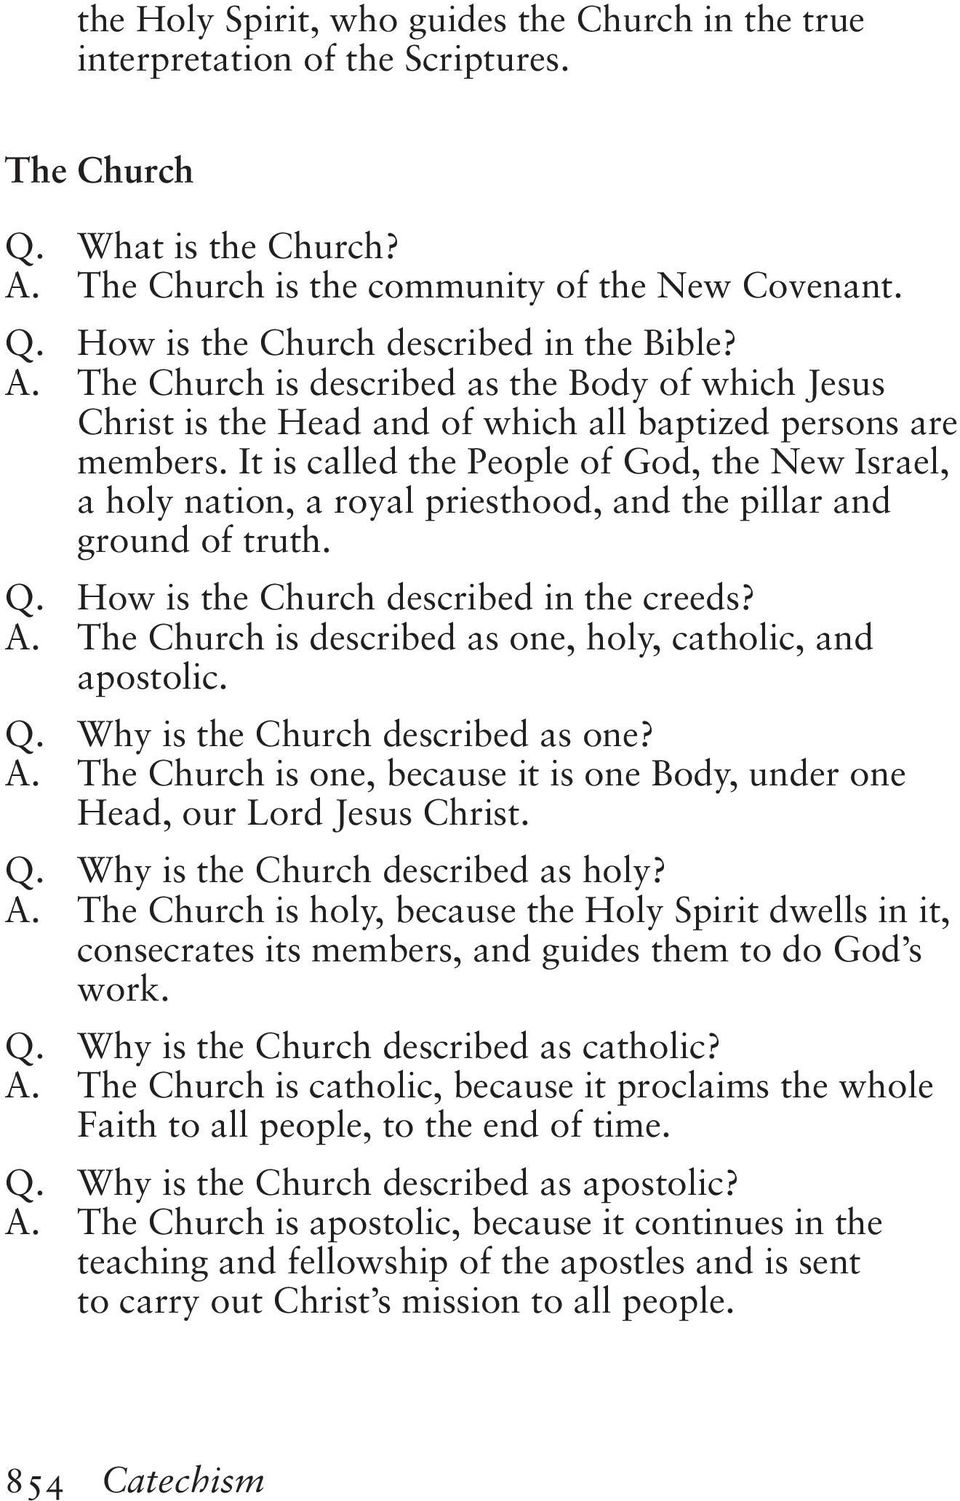 It is called the People of God, the New Israel, a holy nation, a royal priesthood, and the pillar and ground of truth. Q. How is the Church described in the creeds? A.